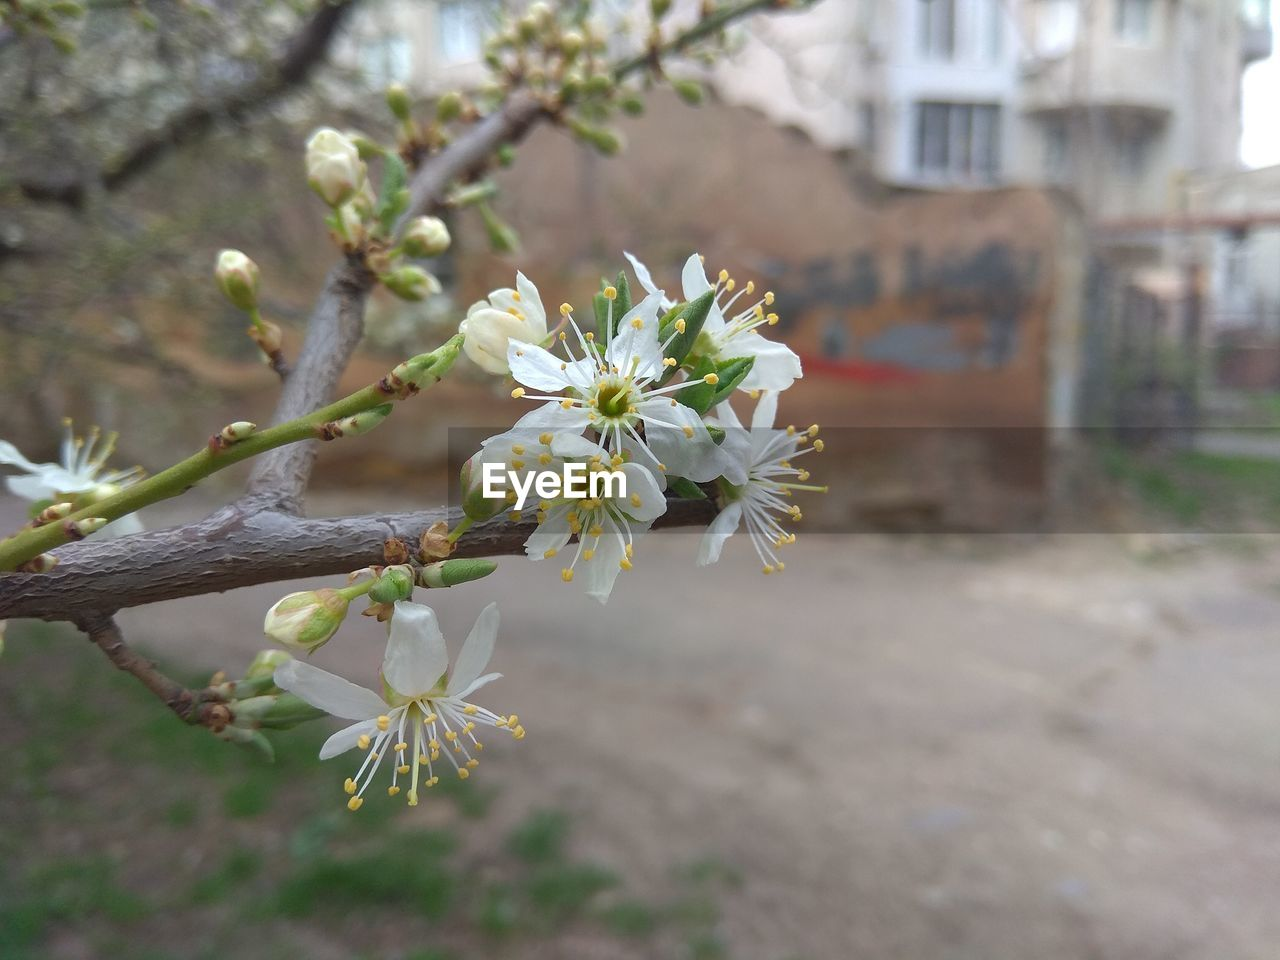 flowering plant, plant, flower, freshness, fragility, growth, vulnerability, beauty in nature, nature, focus on foreground, close-up, day, tree, blossom, petal, white color, no people, inflorescence, outdoors, flower head, springtime, pollen, cherry blossom, spring